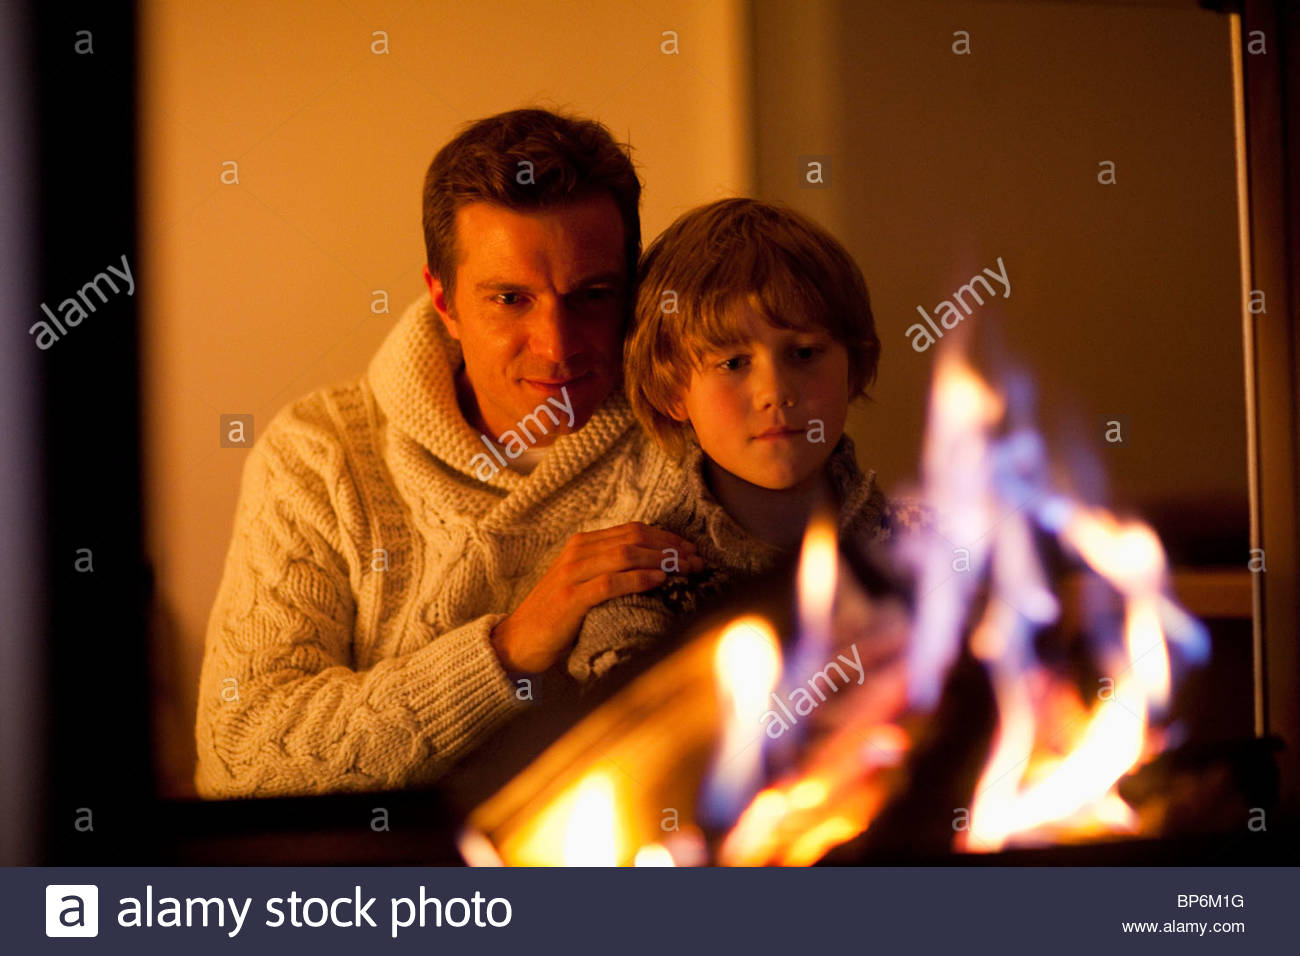 Father and son sitting near fireplace - Stock Image